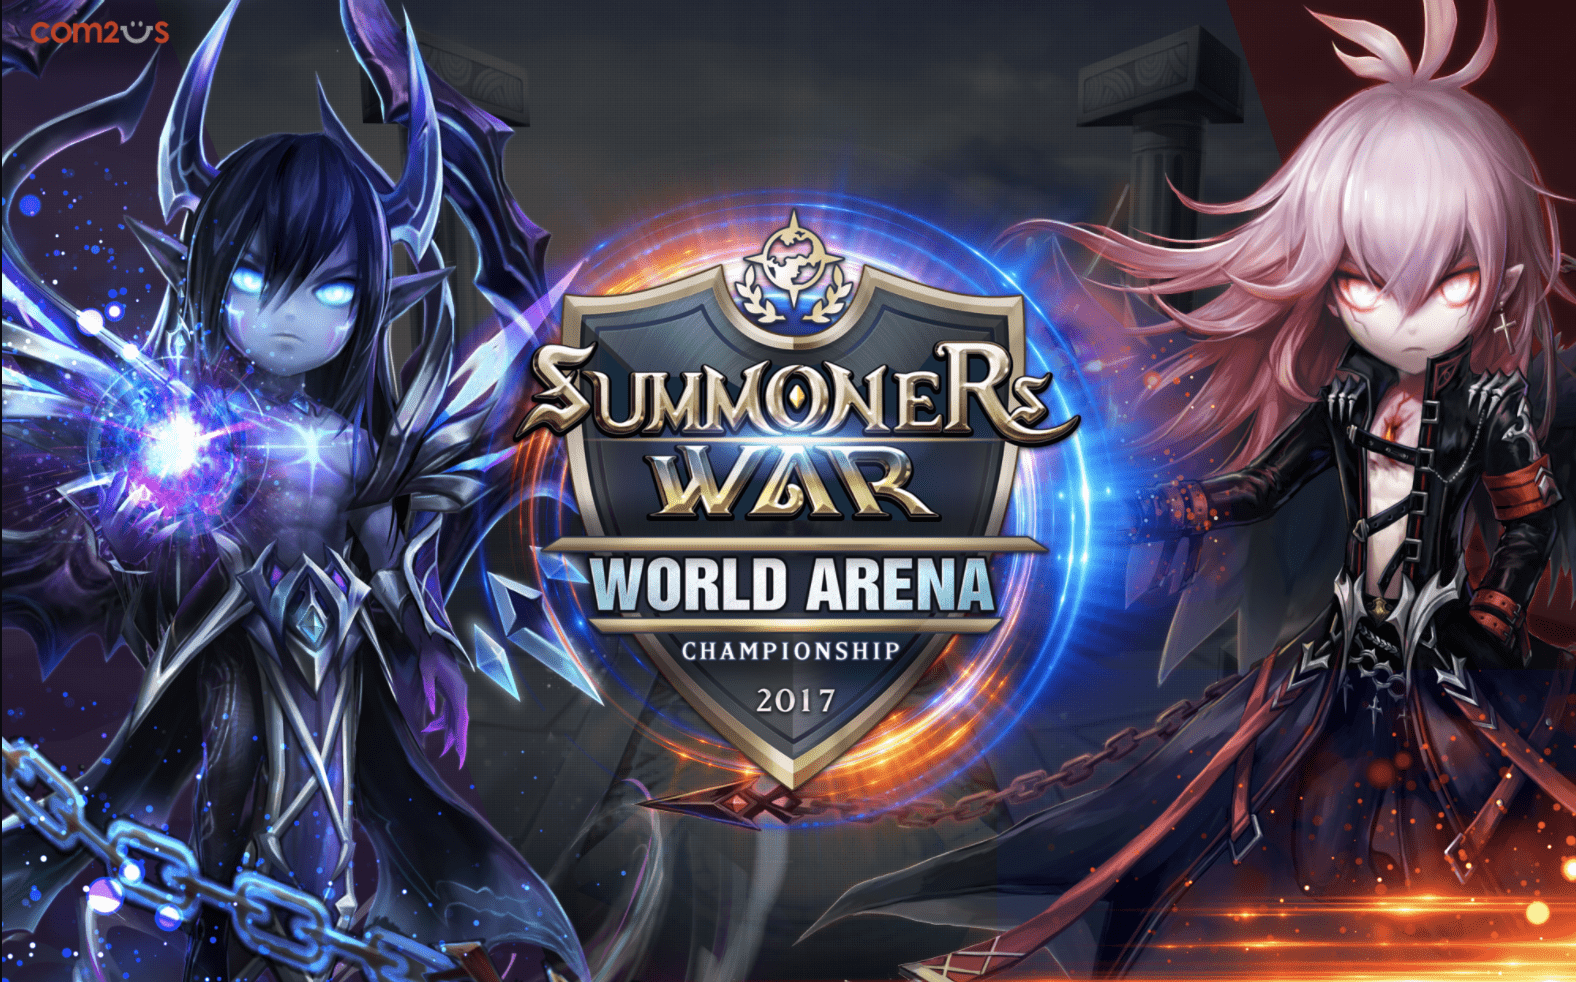 Summoners War : le tournoi européen le week-end prochain à Paris, l'eSport mobile continue sa route